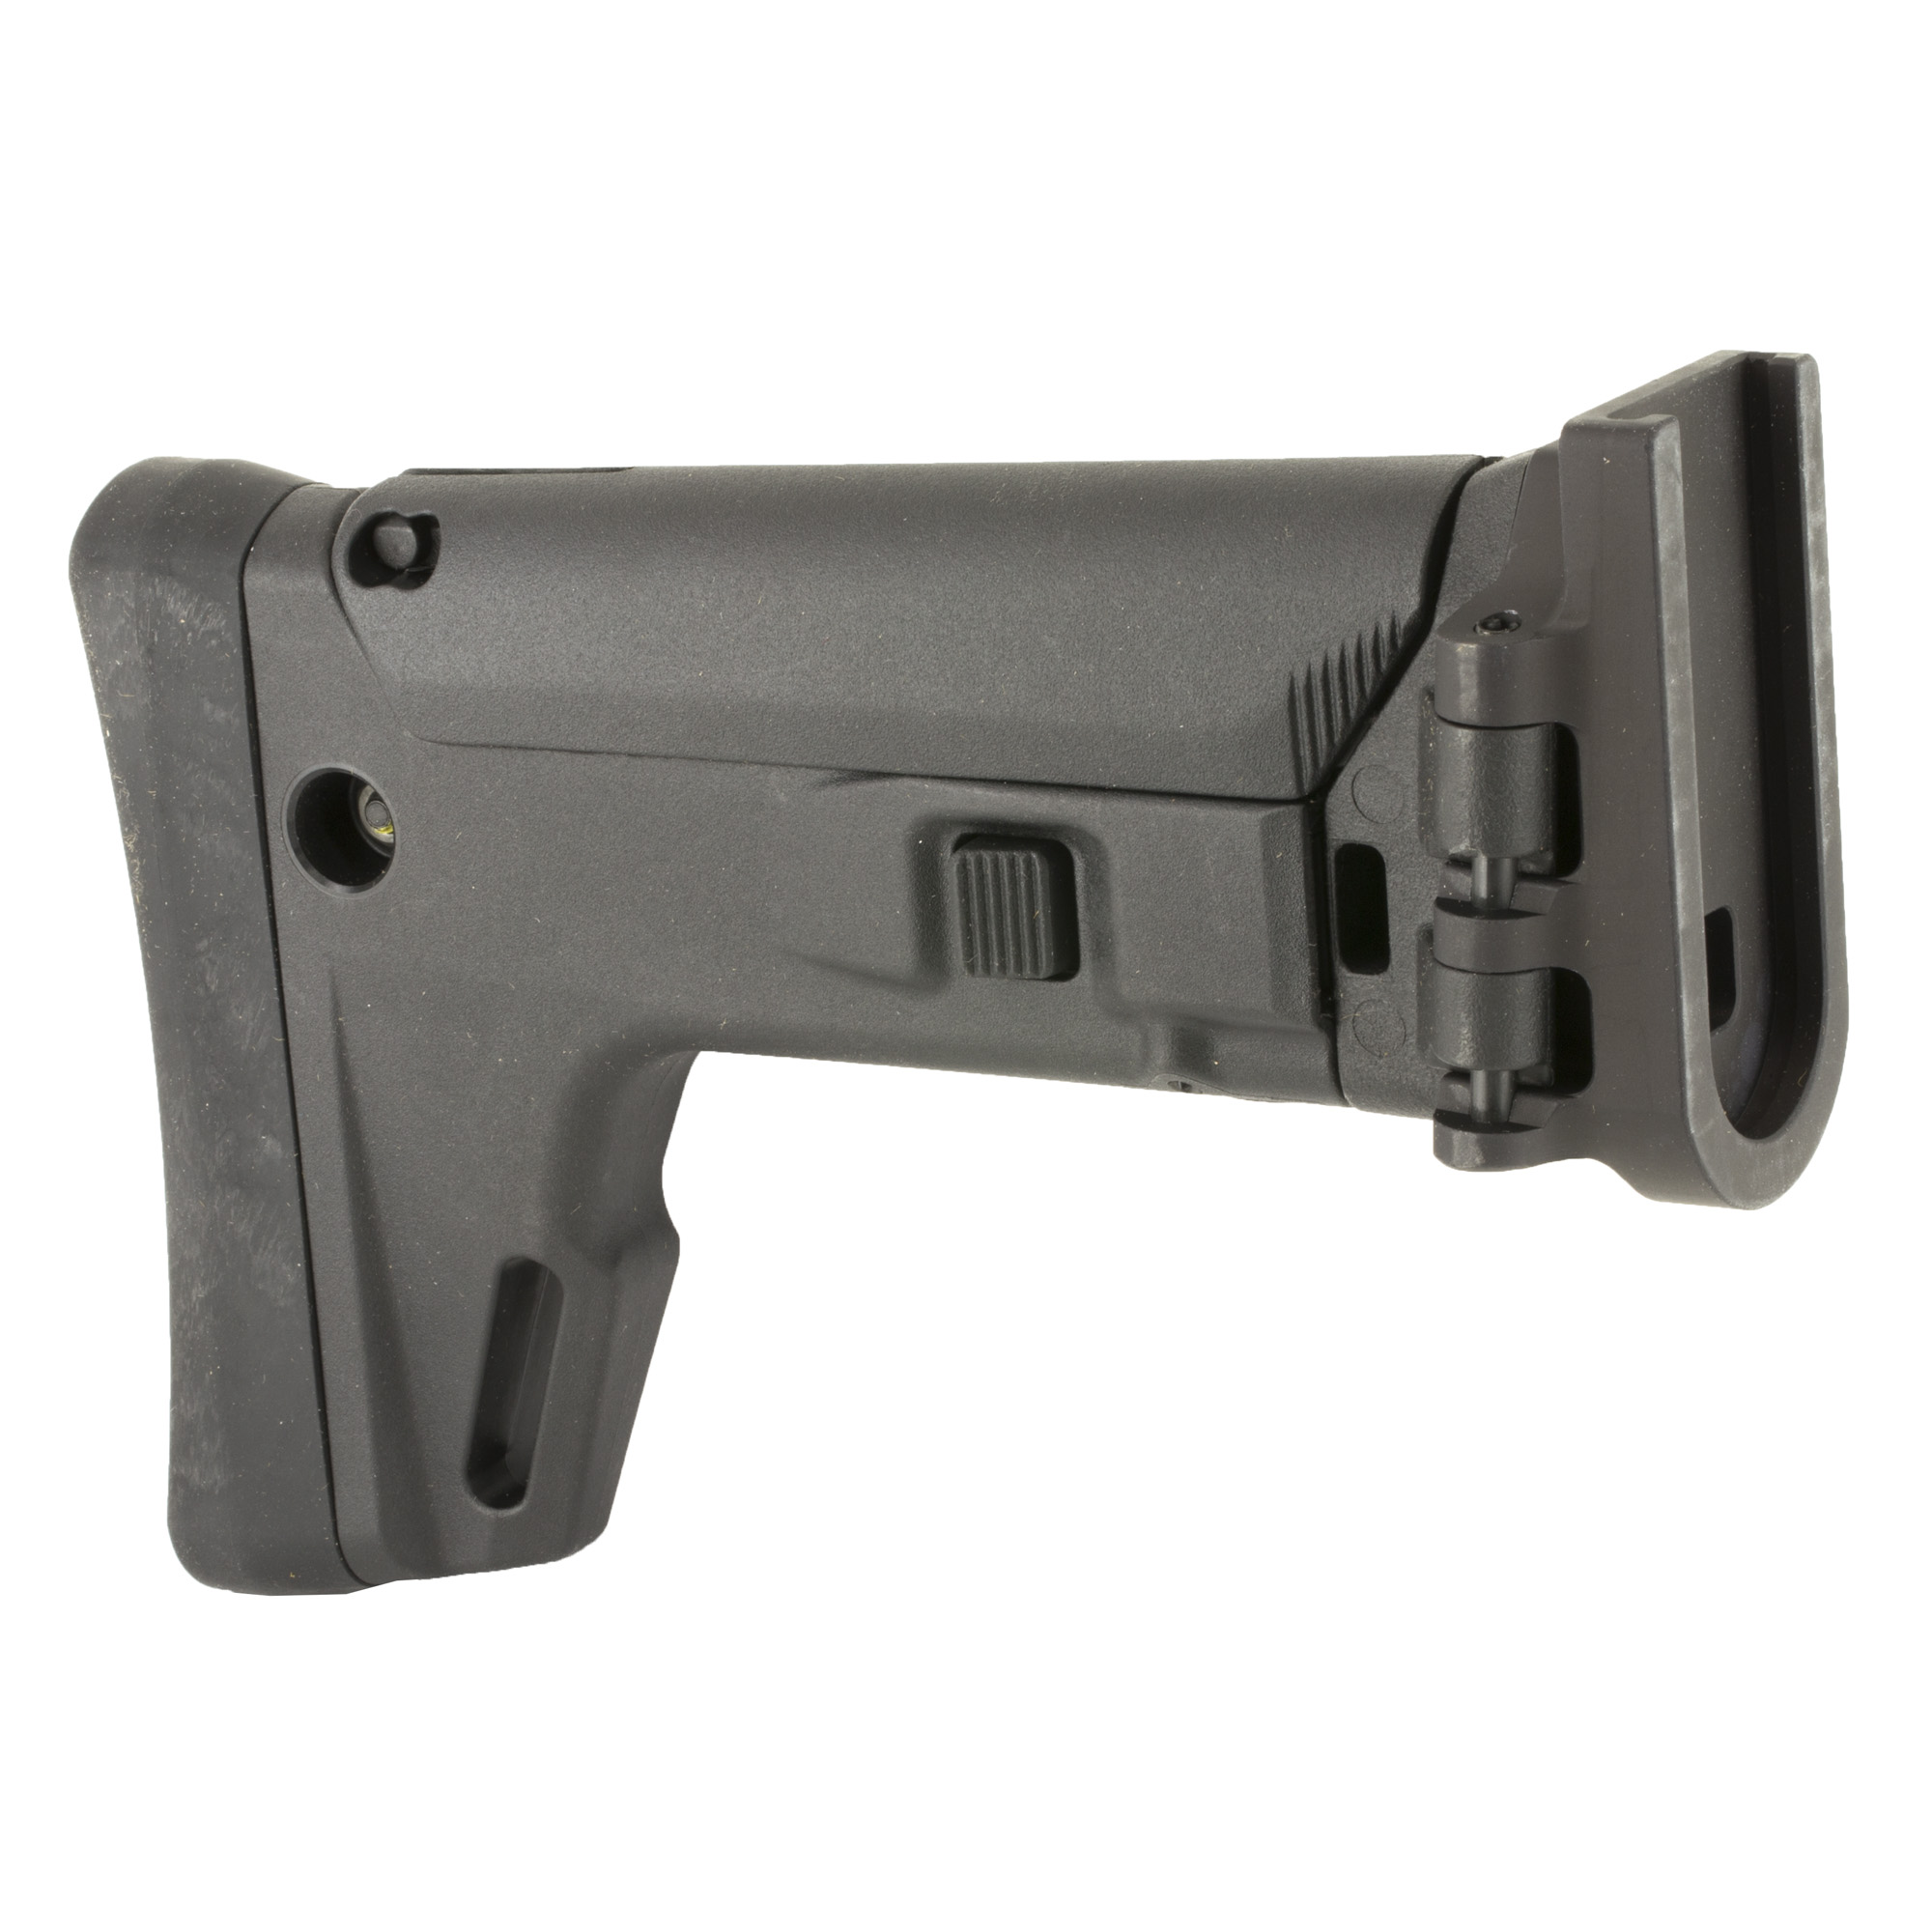 Kdg Scar Adaptable Stock Kit Blk